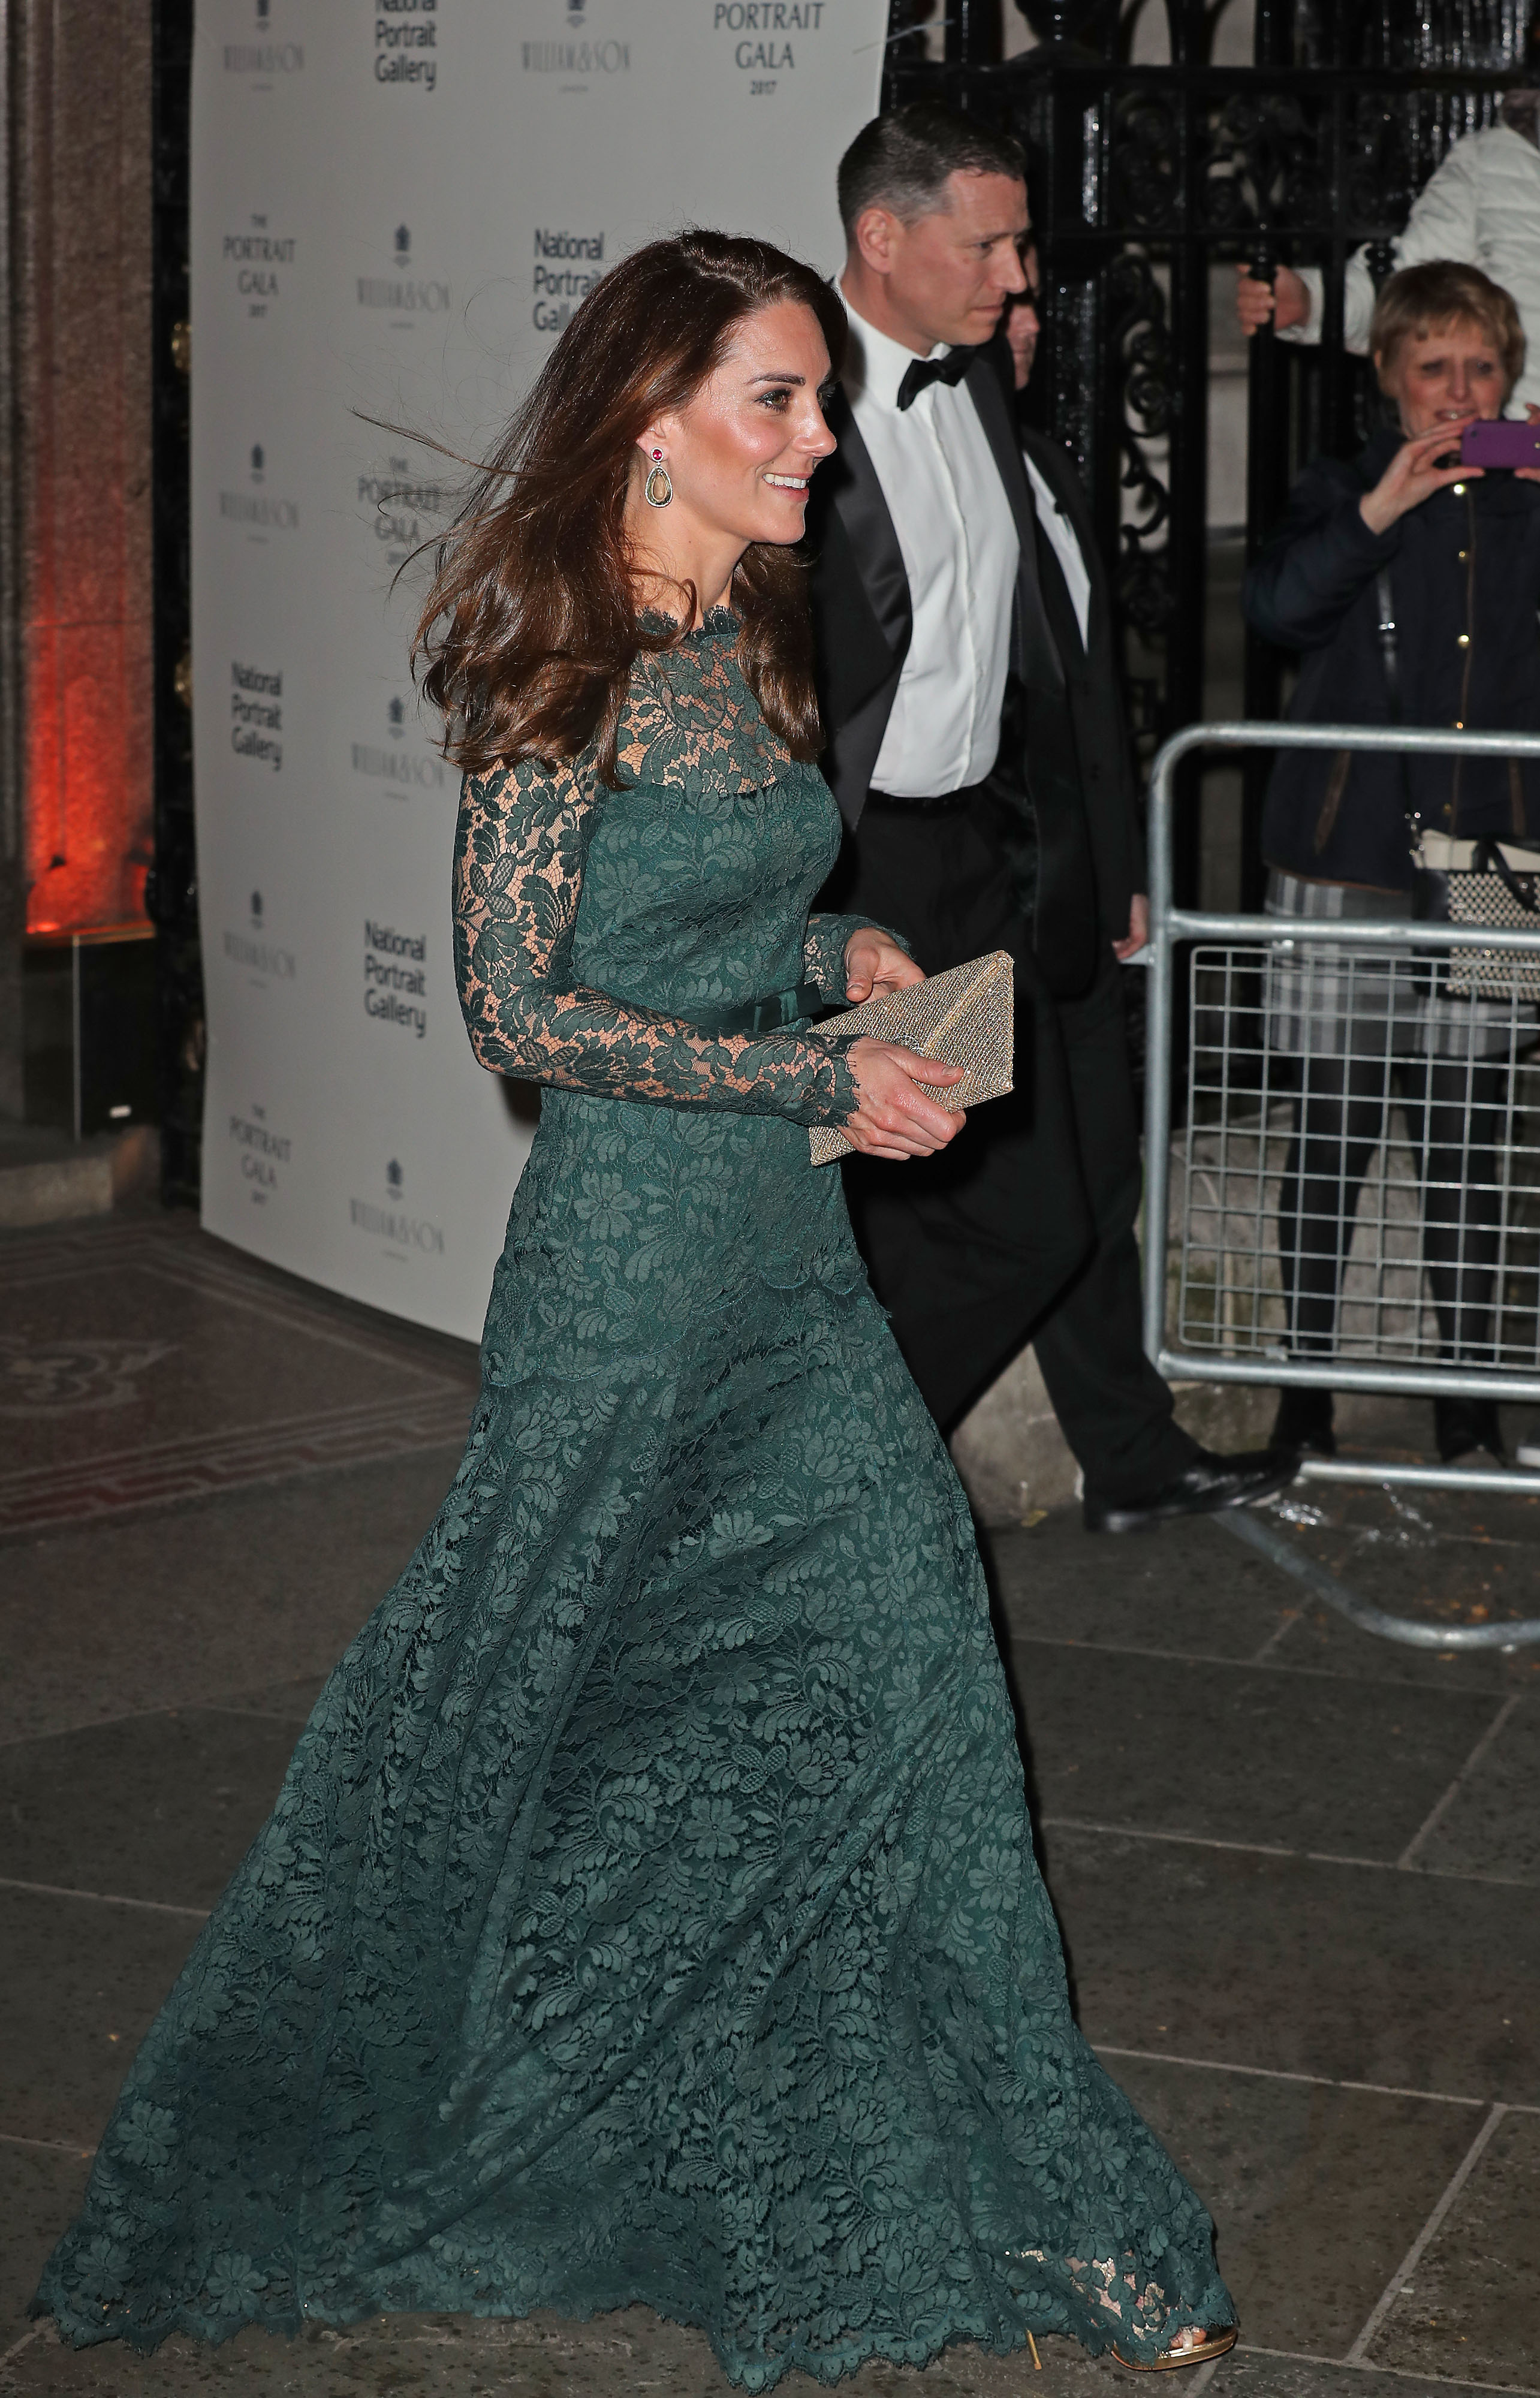 The Duchess of Cambridge leaves the National Portrait Gallery in London after the 2017 Portrait Gala (Chris Radburn/PA)